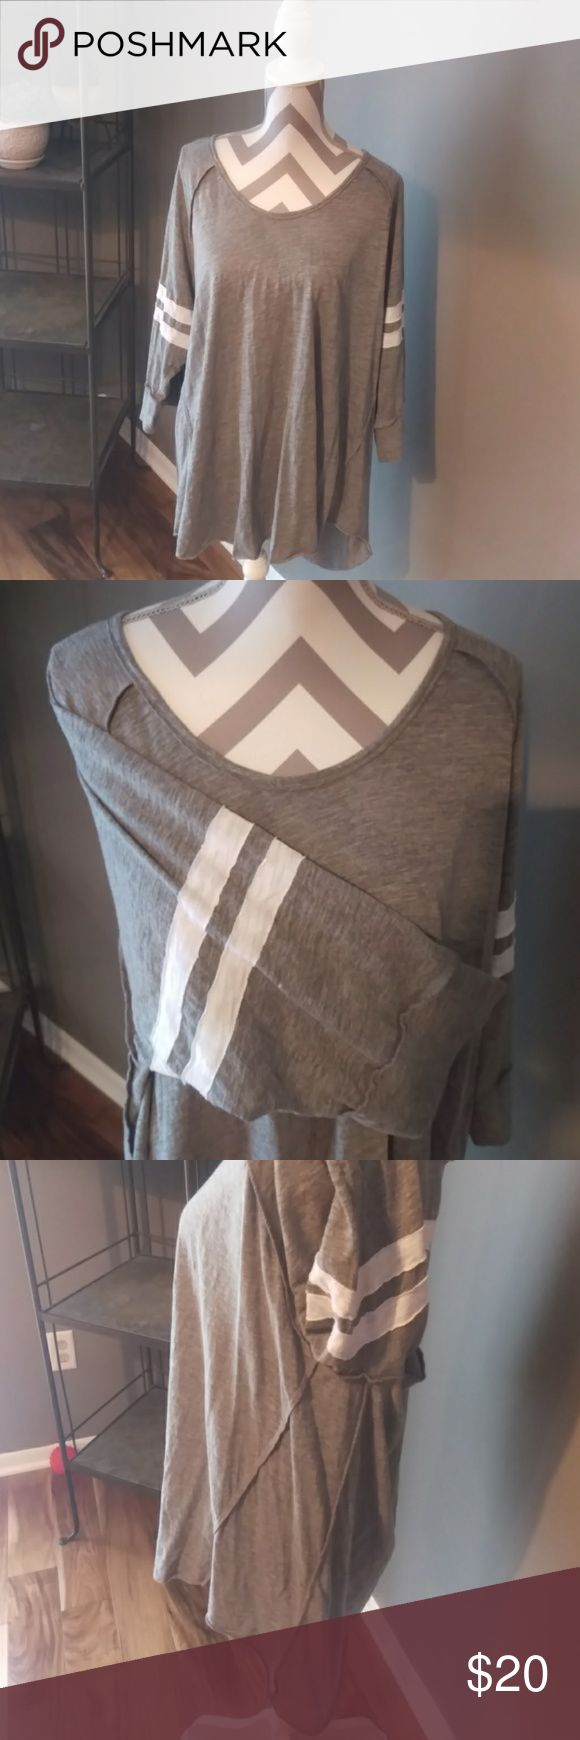 Torrid Football Tunic EUC. Bought on Poshmark and doesn't fit. Adorable top with fun stitching details! Great with leggings for a Saturday football game. torrid Tops Tunics